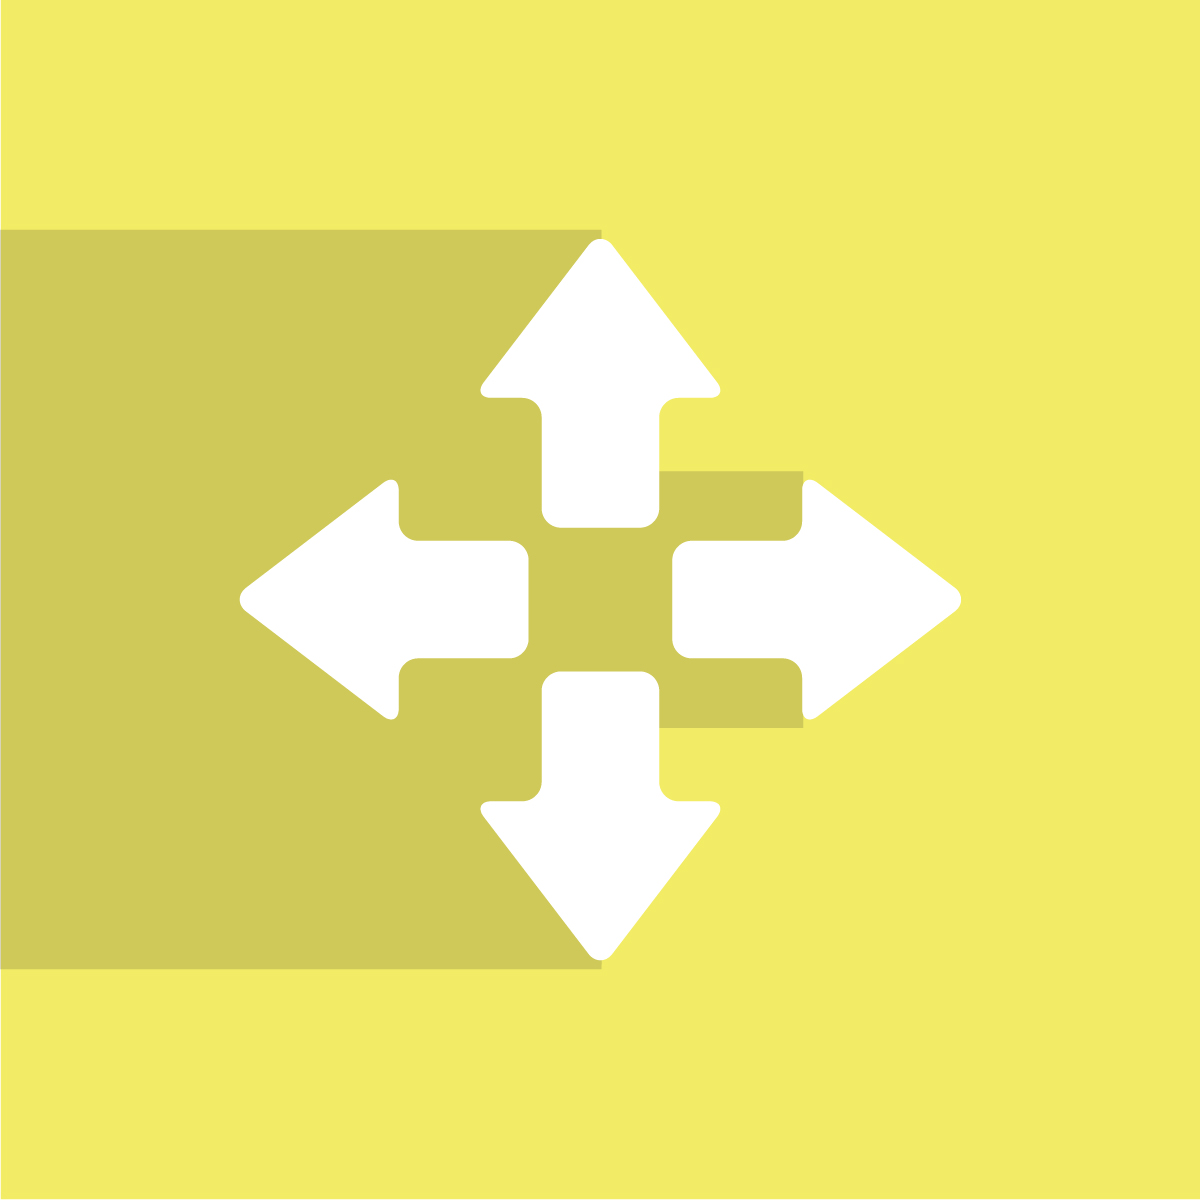 Illustration ClearLight Biotechnologies Services Navigator Icon Yellow